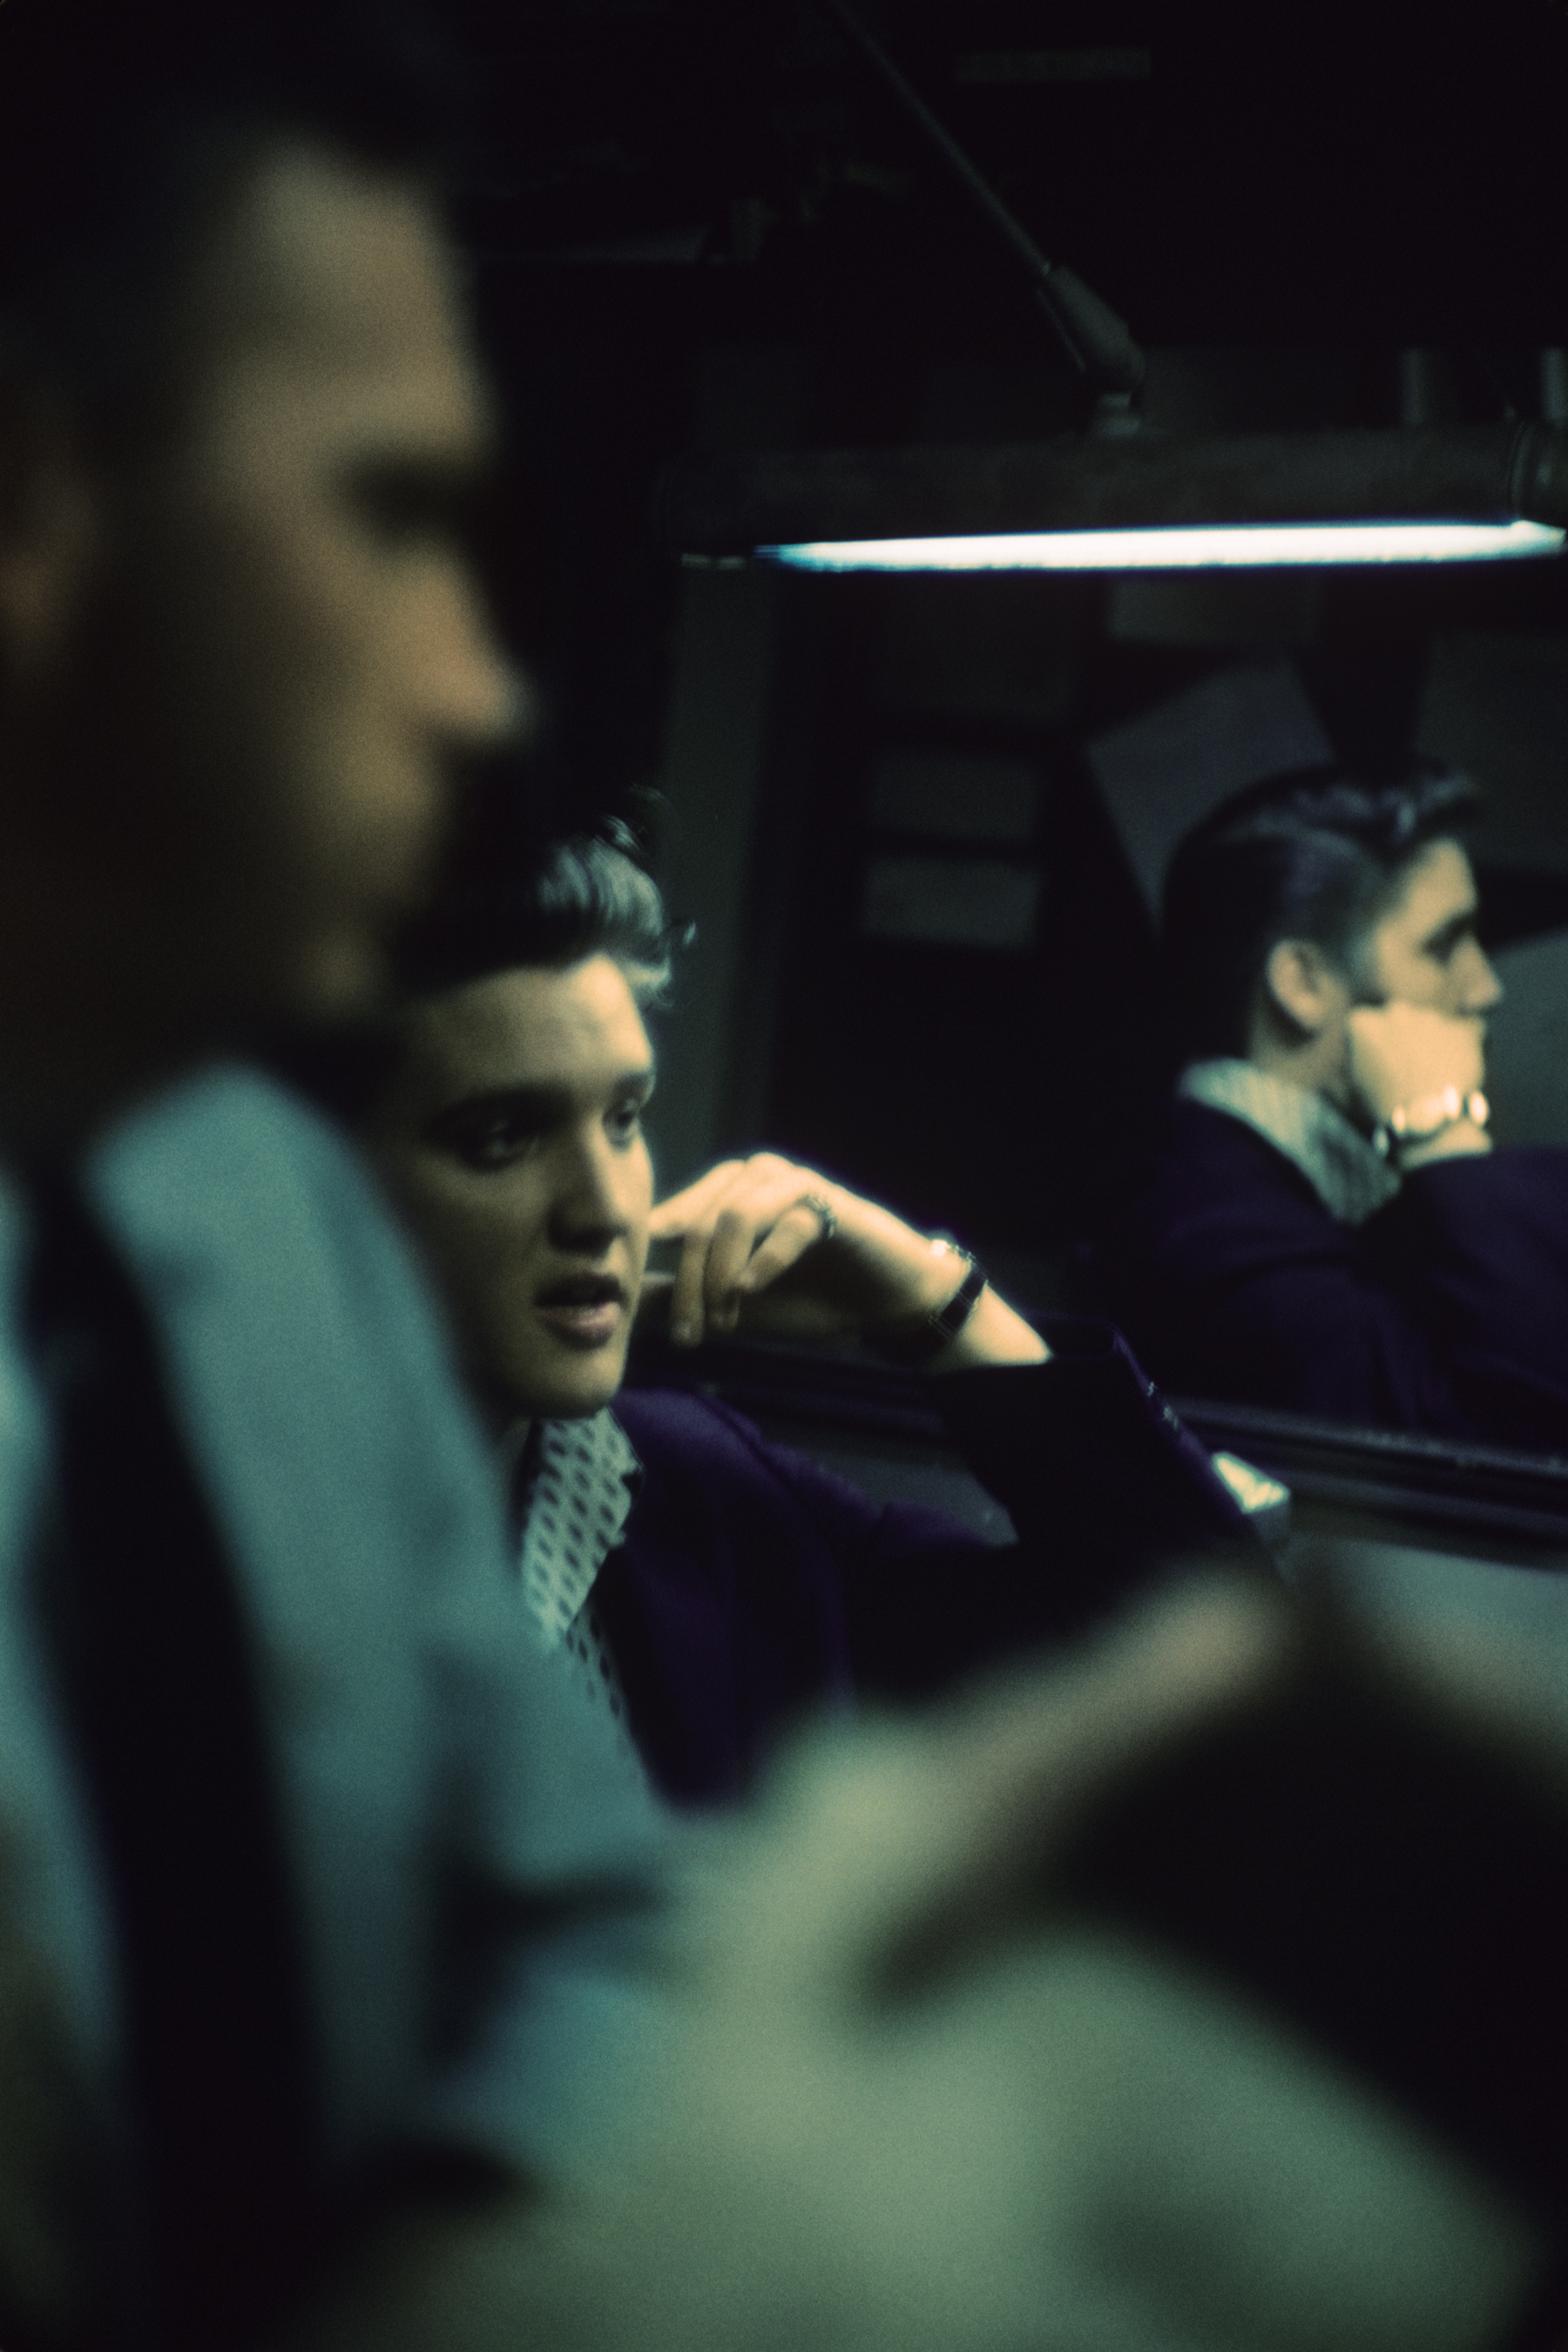 Following Elvis: Never-Before-Seen Photos of the King at Work and Play